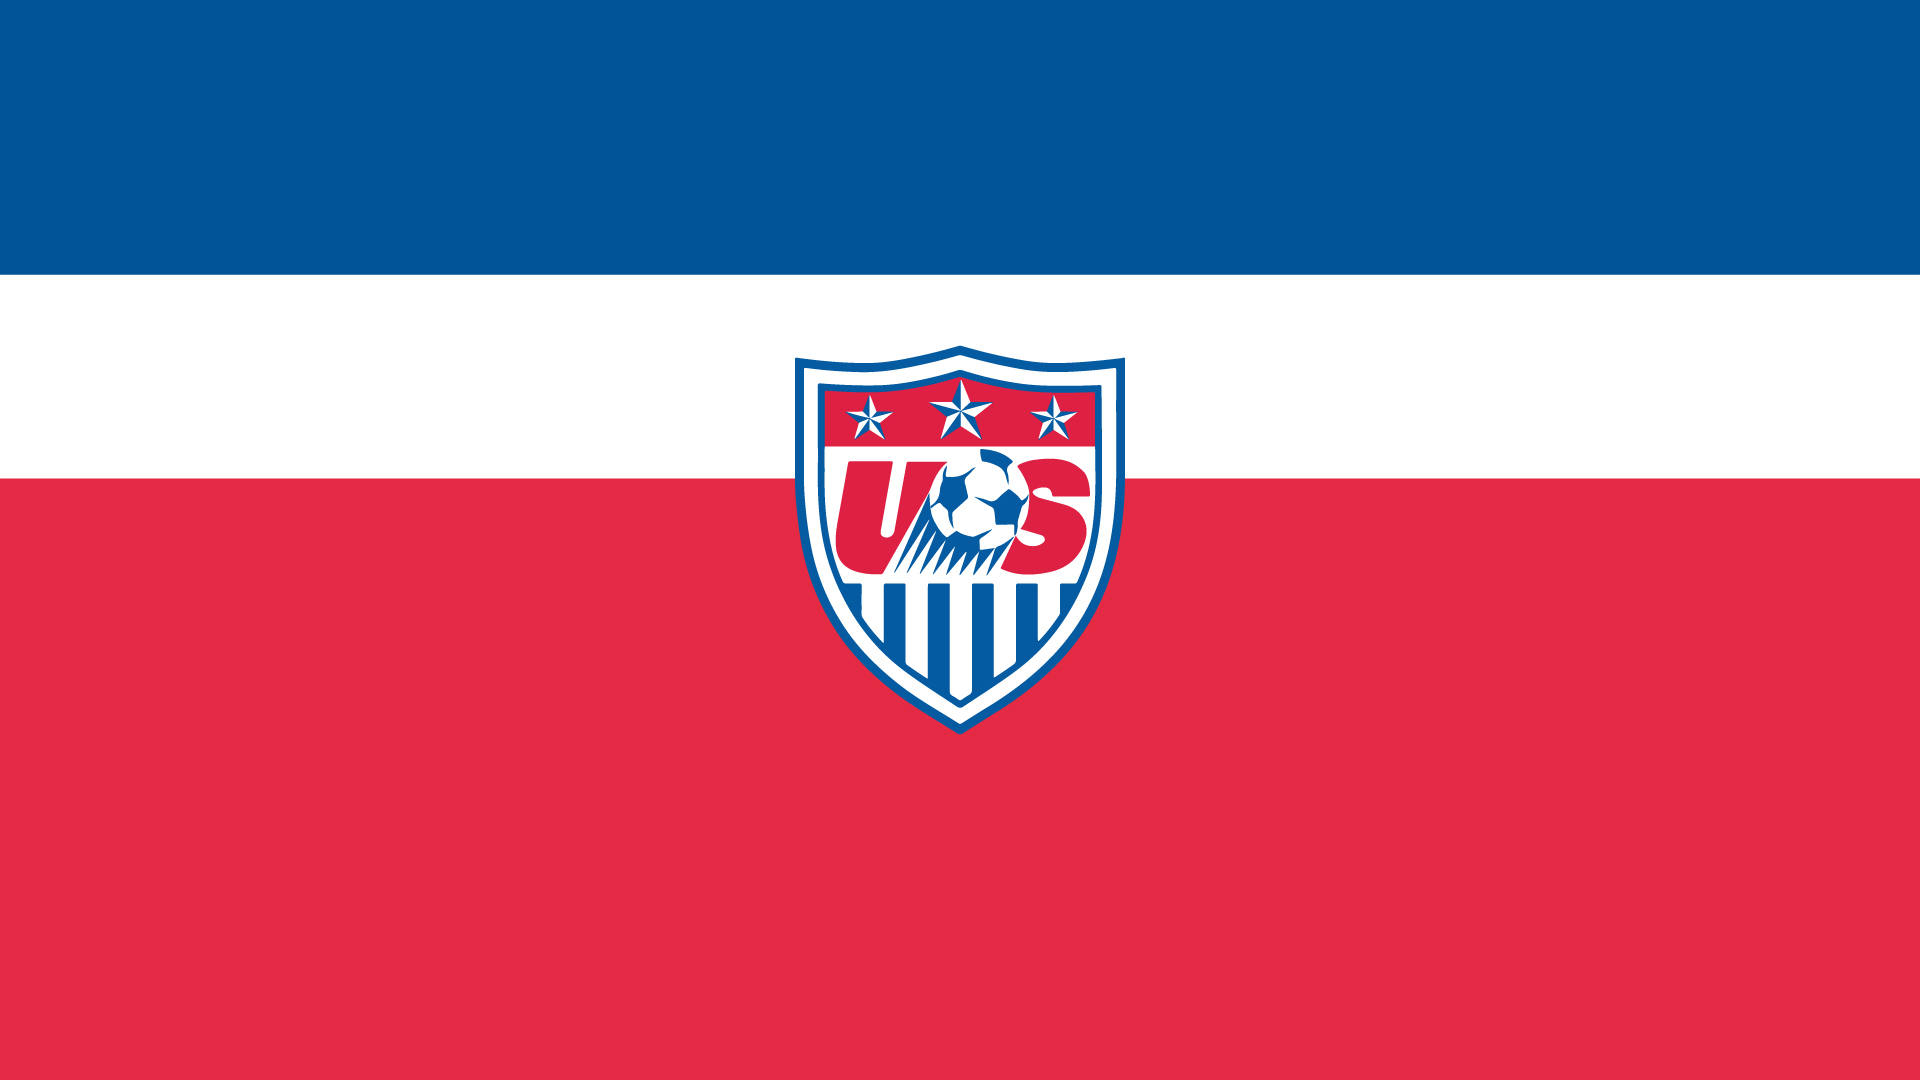 USA Nation Soccer Team HD Wallpaper Background Image 1920x1080 1920x1080